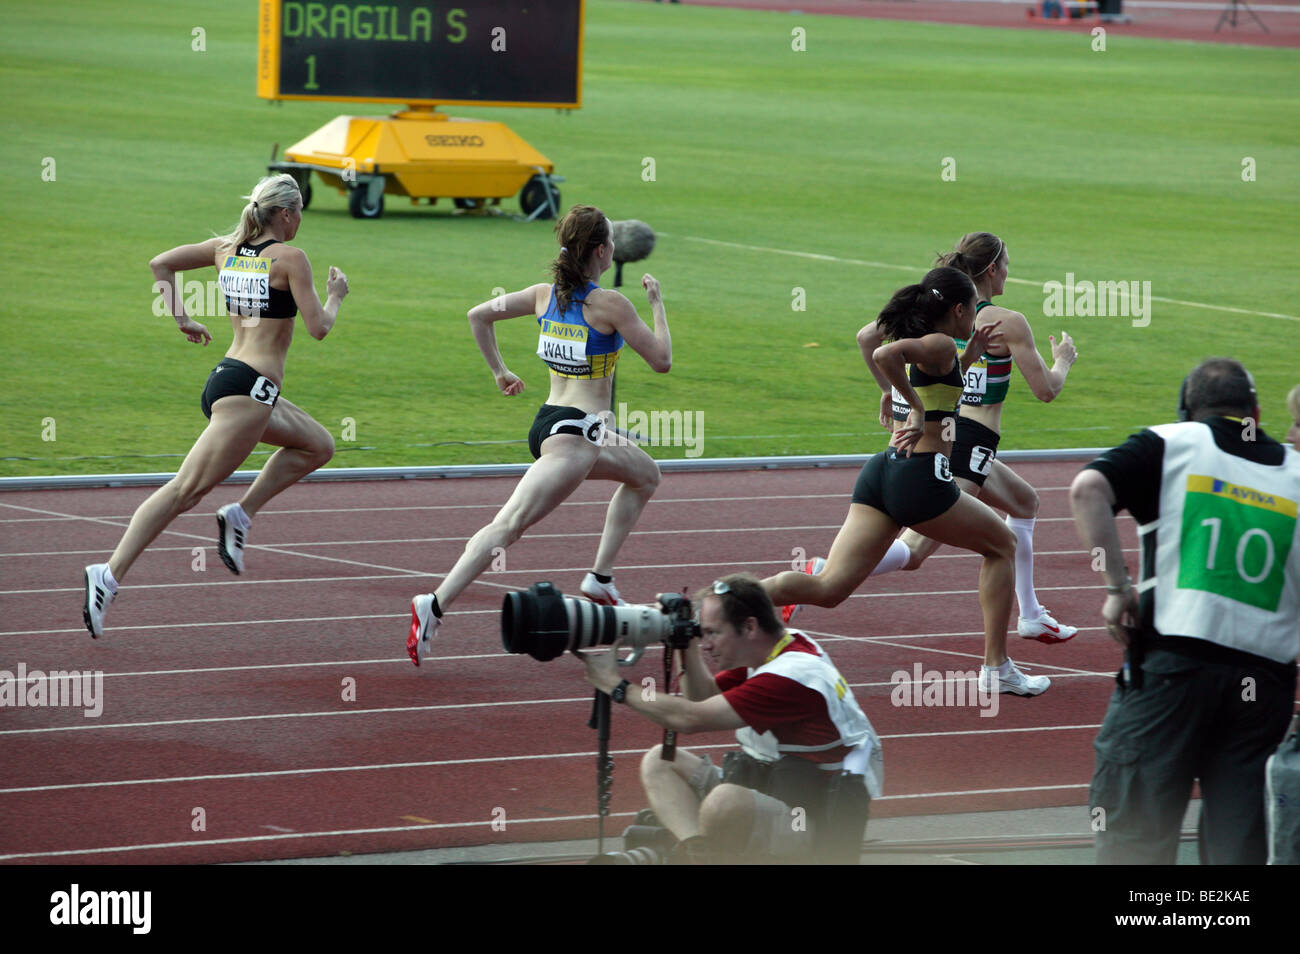 Monique Willians and Kim Wall battle down the back straight during the womens 400m 'B' final at the Aviva - Stock Image